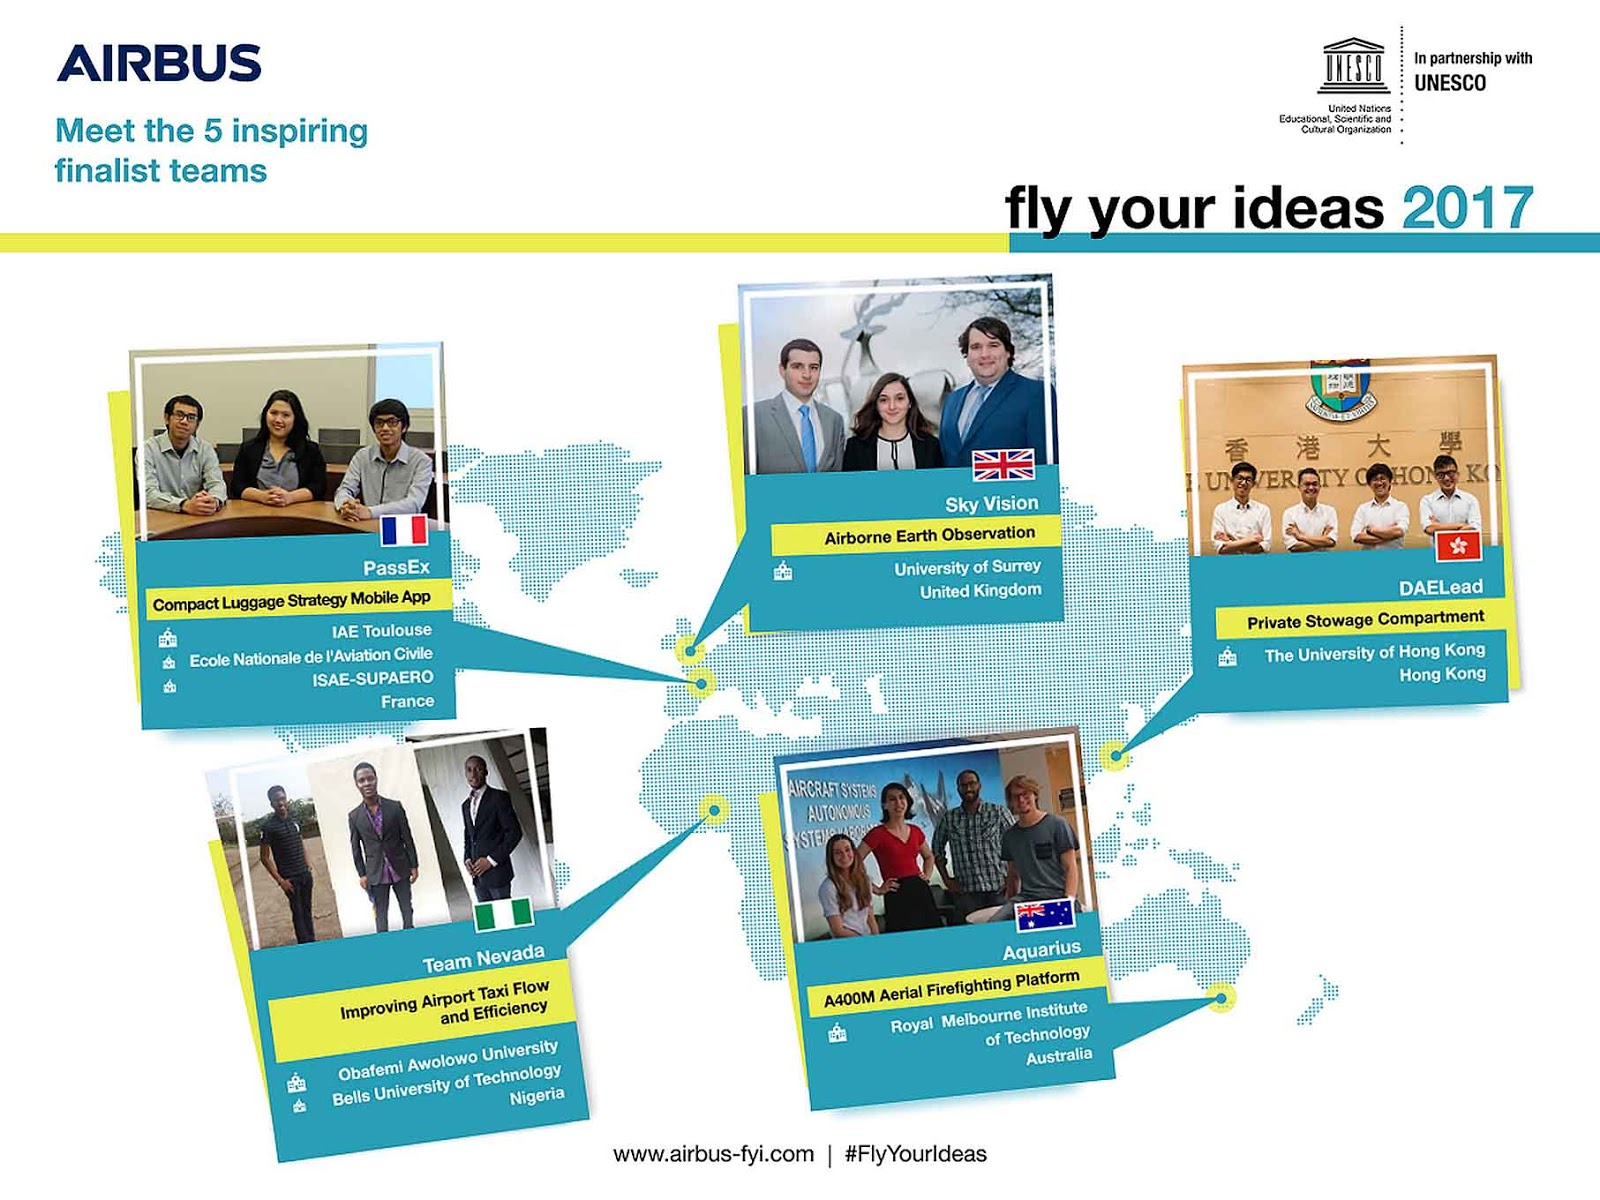 No Malaysian Team Made It to Airbus Fly Your Ideas 2017